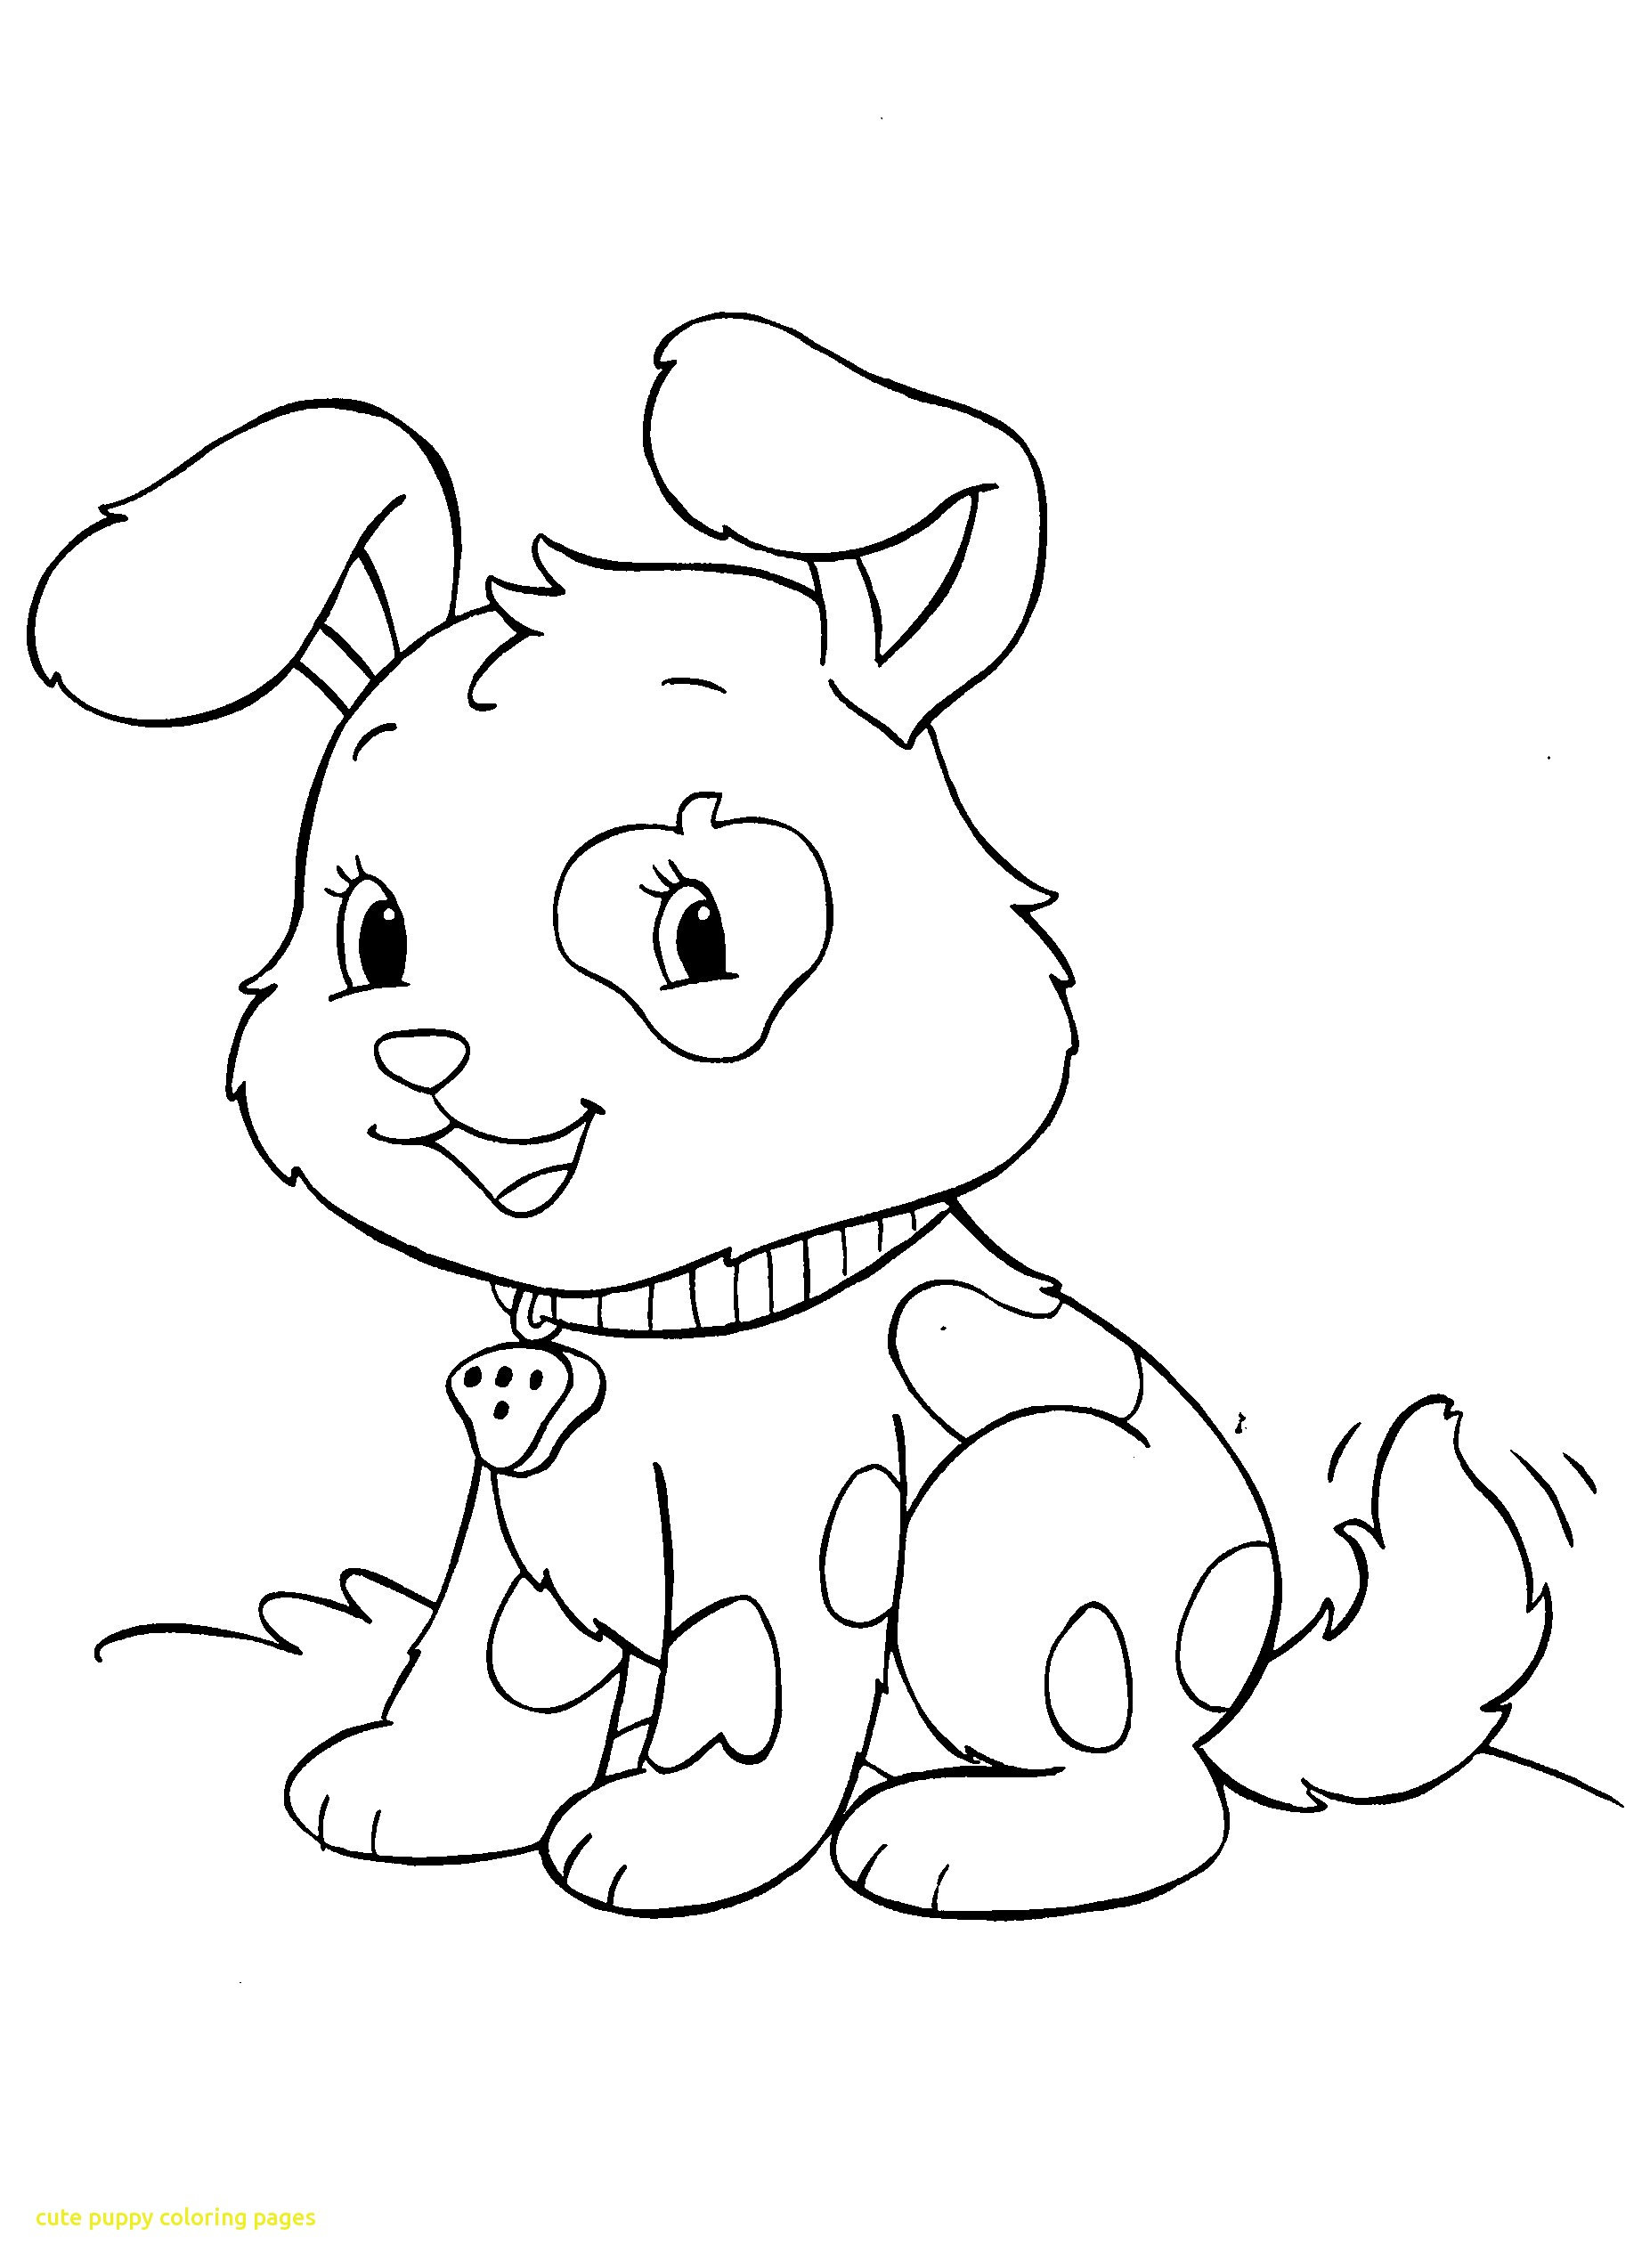 Cute Nyan Cat Popular Easy Coloring Pages Nyan Cat Coloring